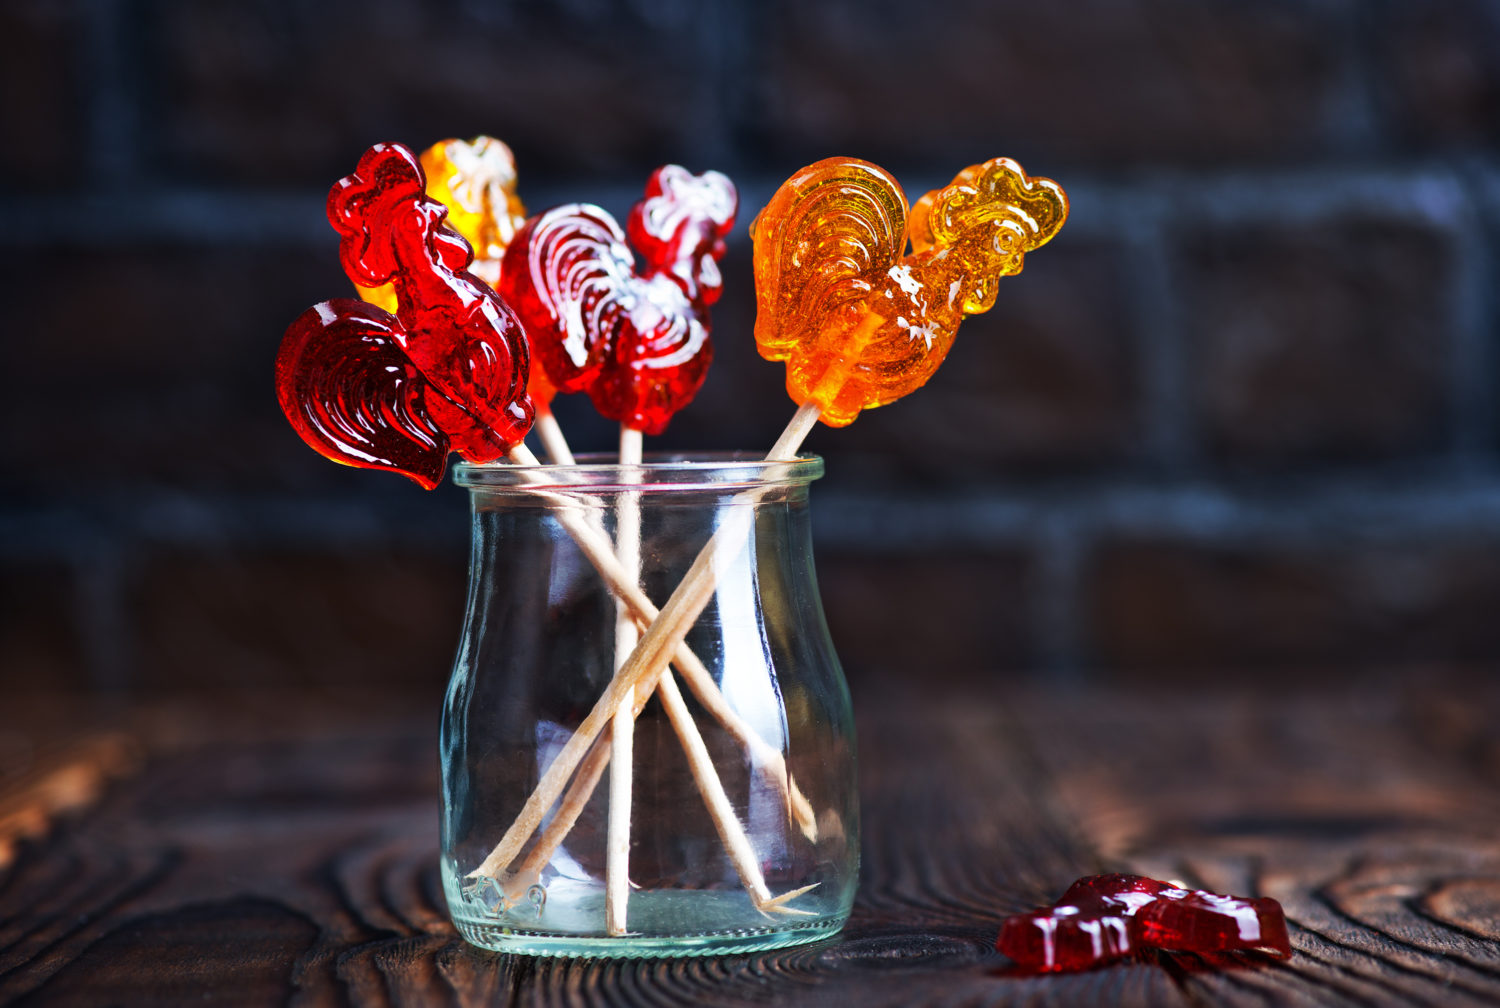 Candy roosters in a jar